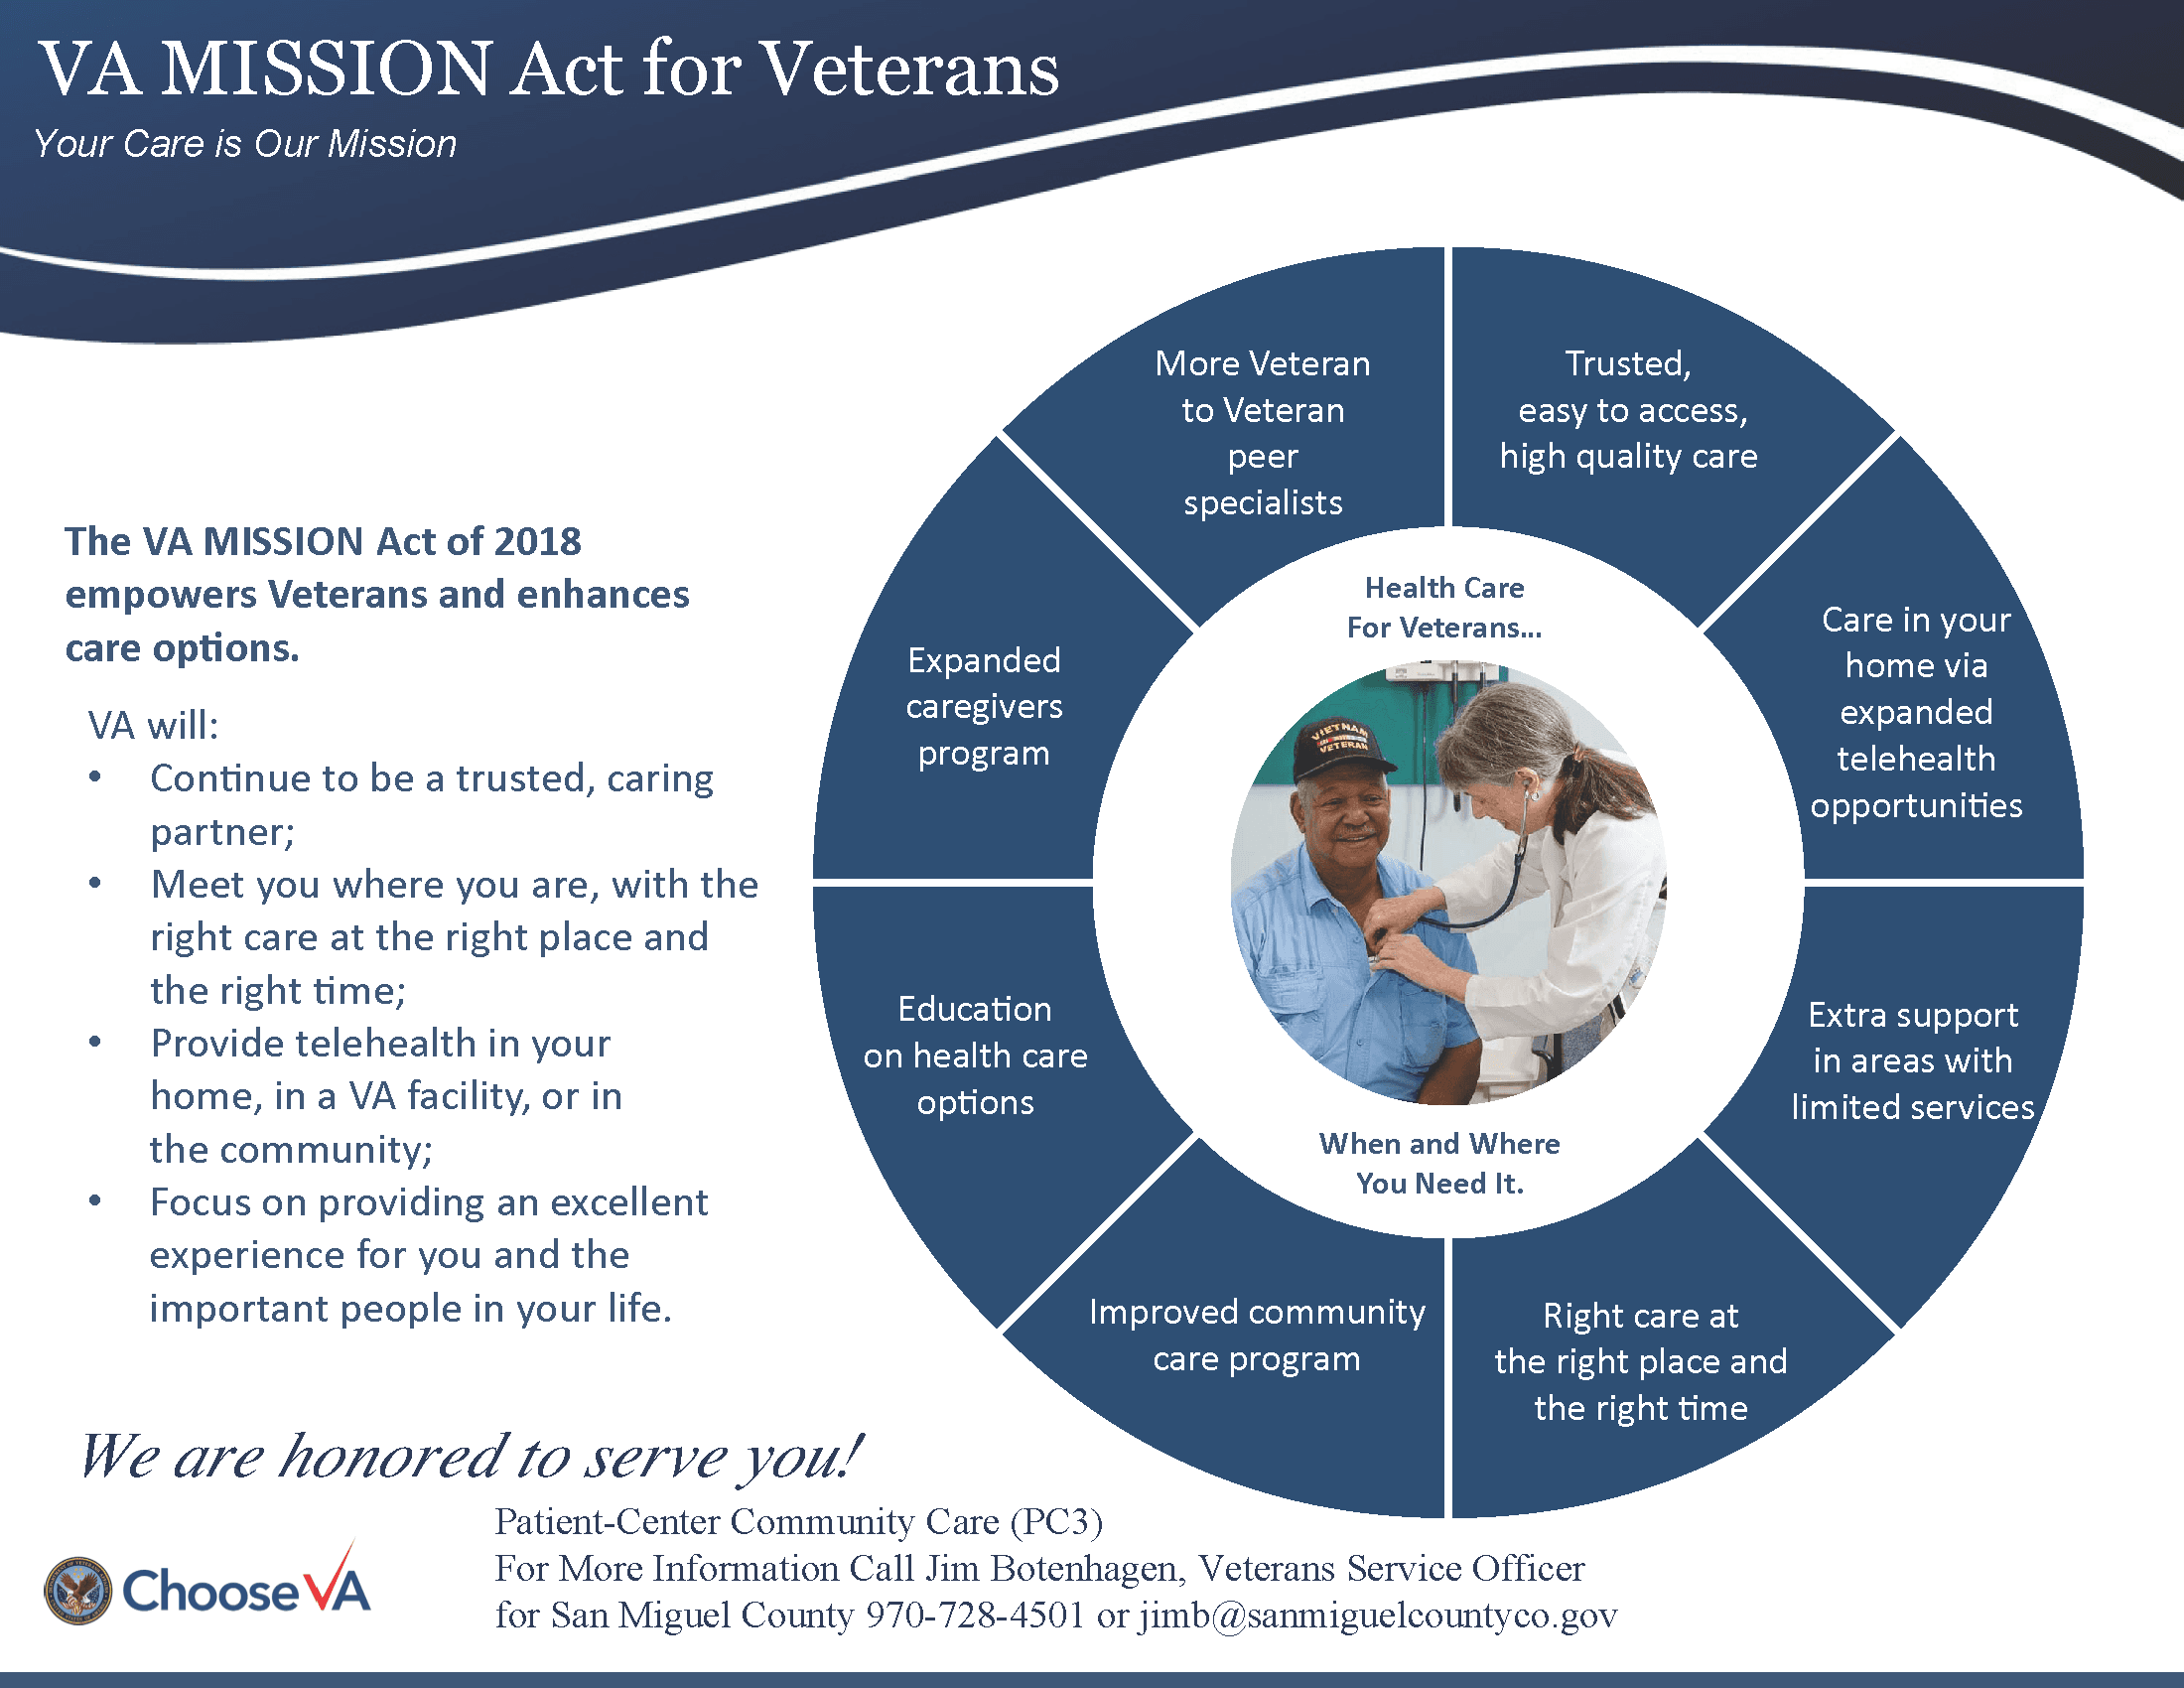 VA MISSION Act of 2018 link to VA website